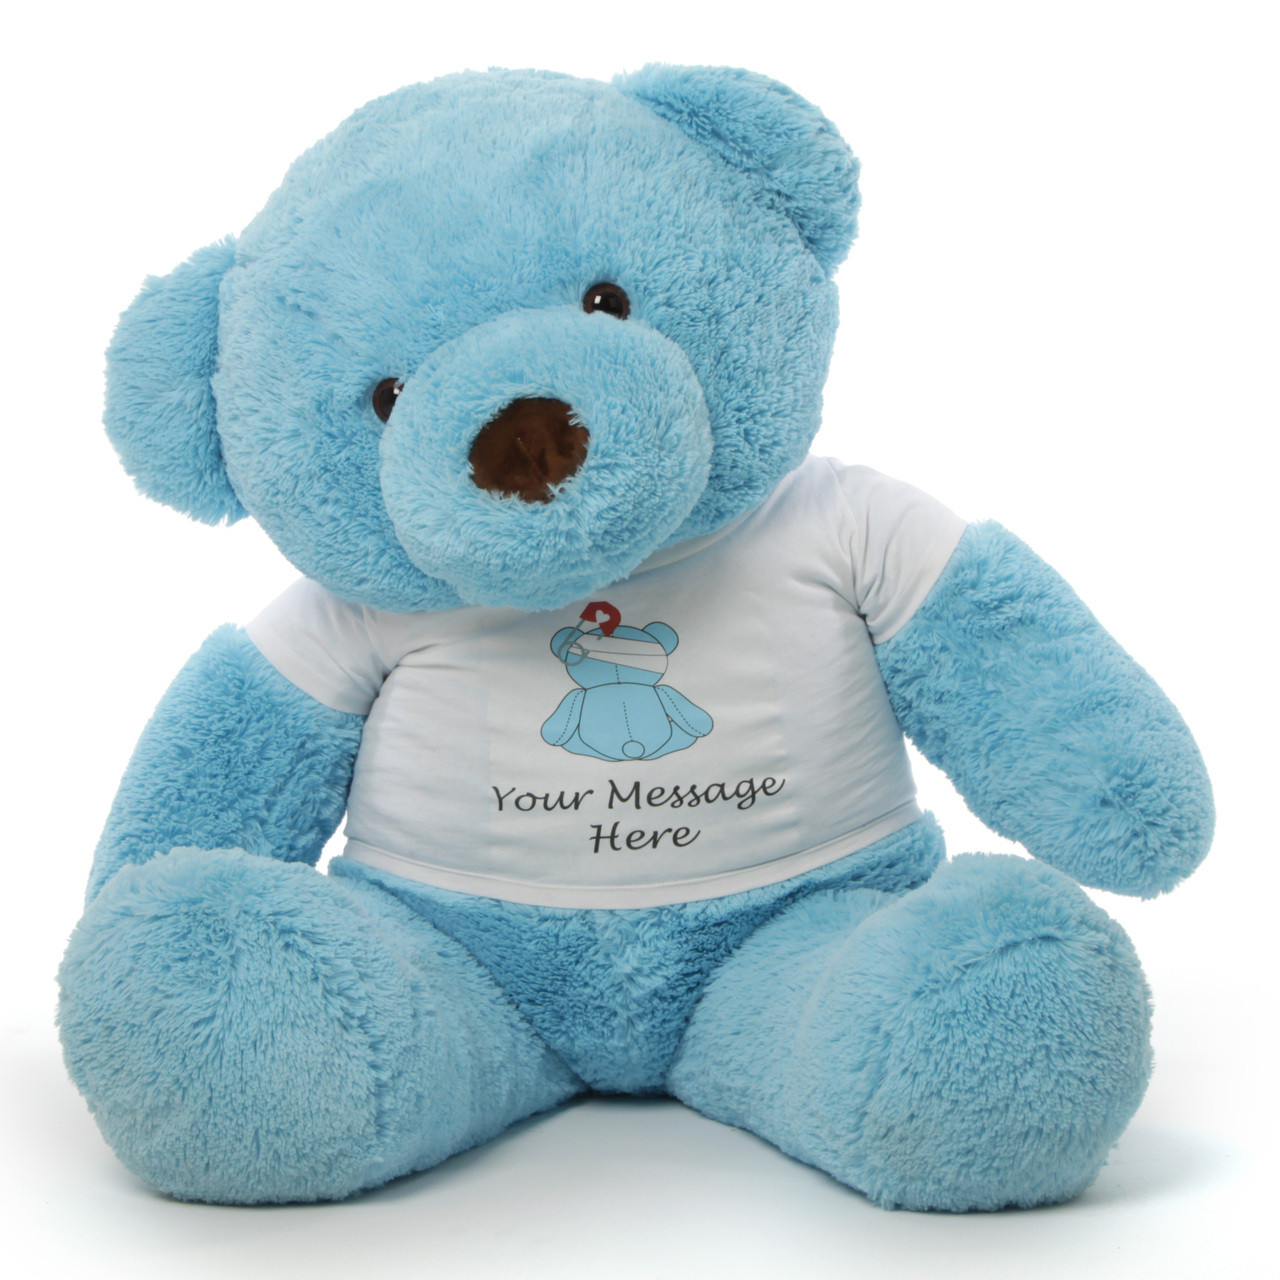 4 ft. Giant Sky BlueTeddy bear with your personalized 'Feel Better' message